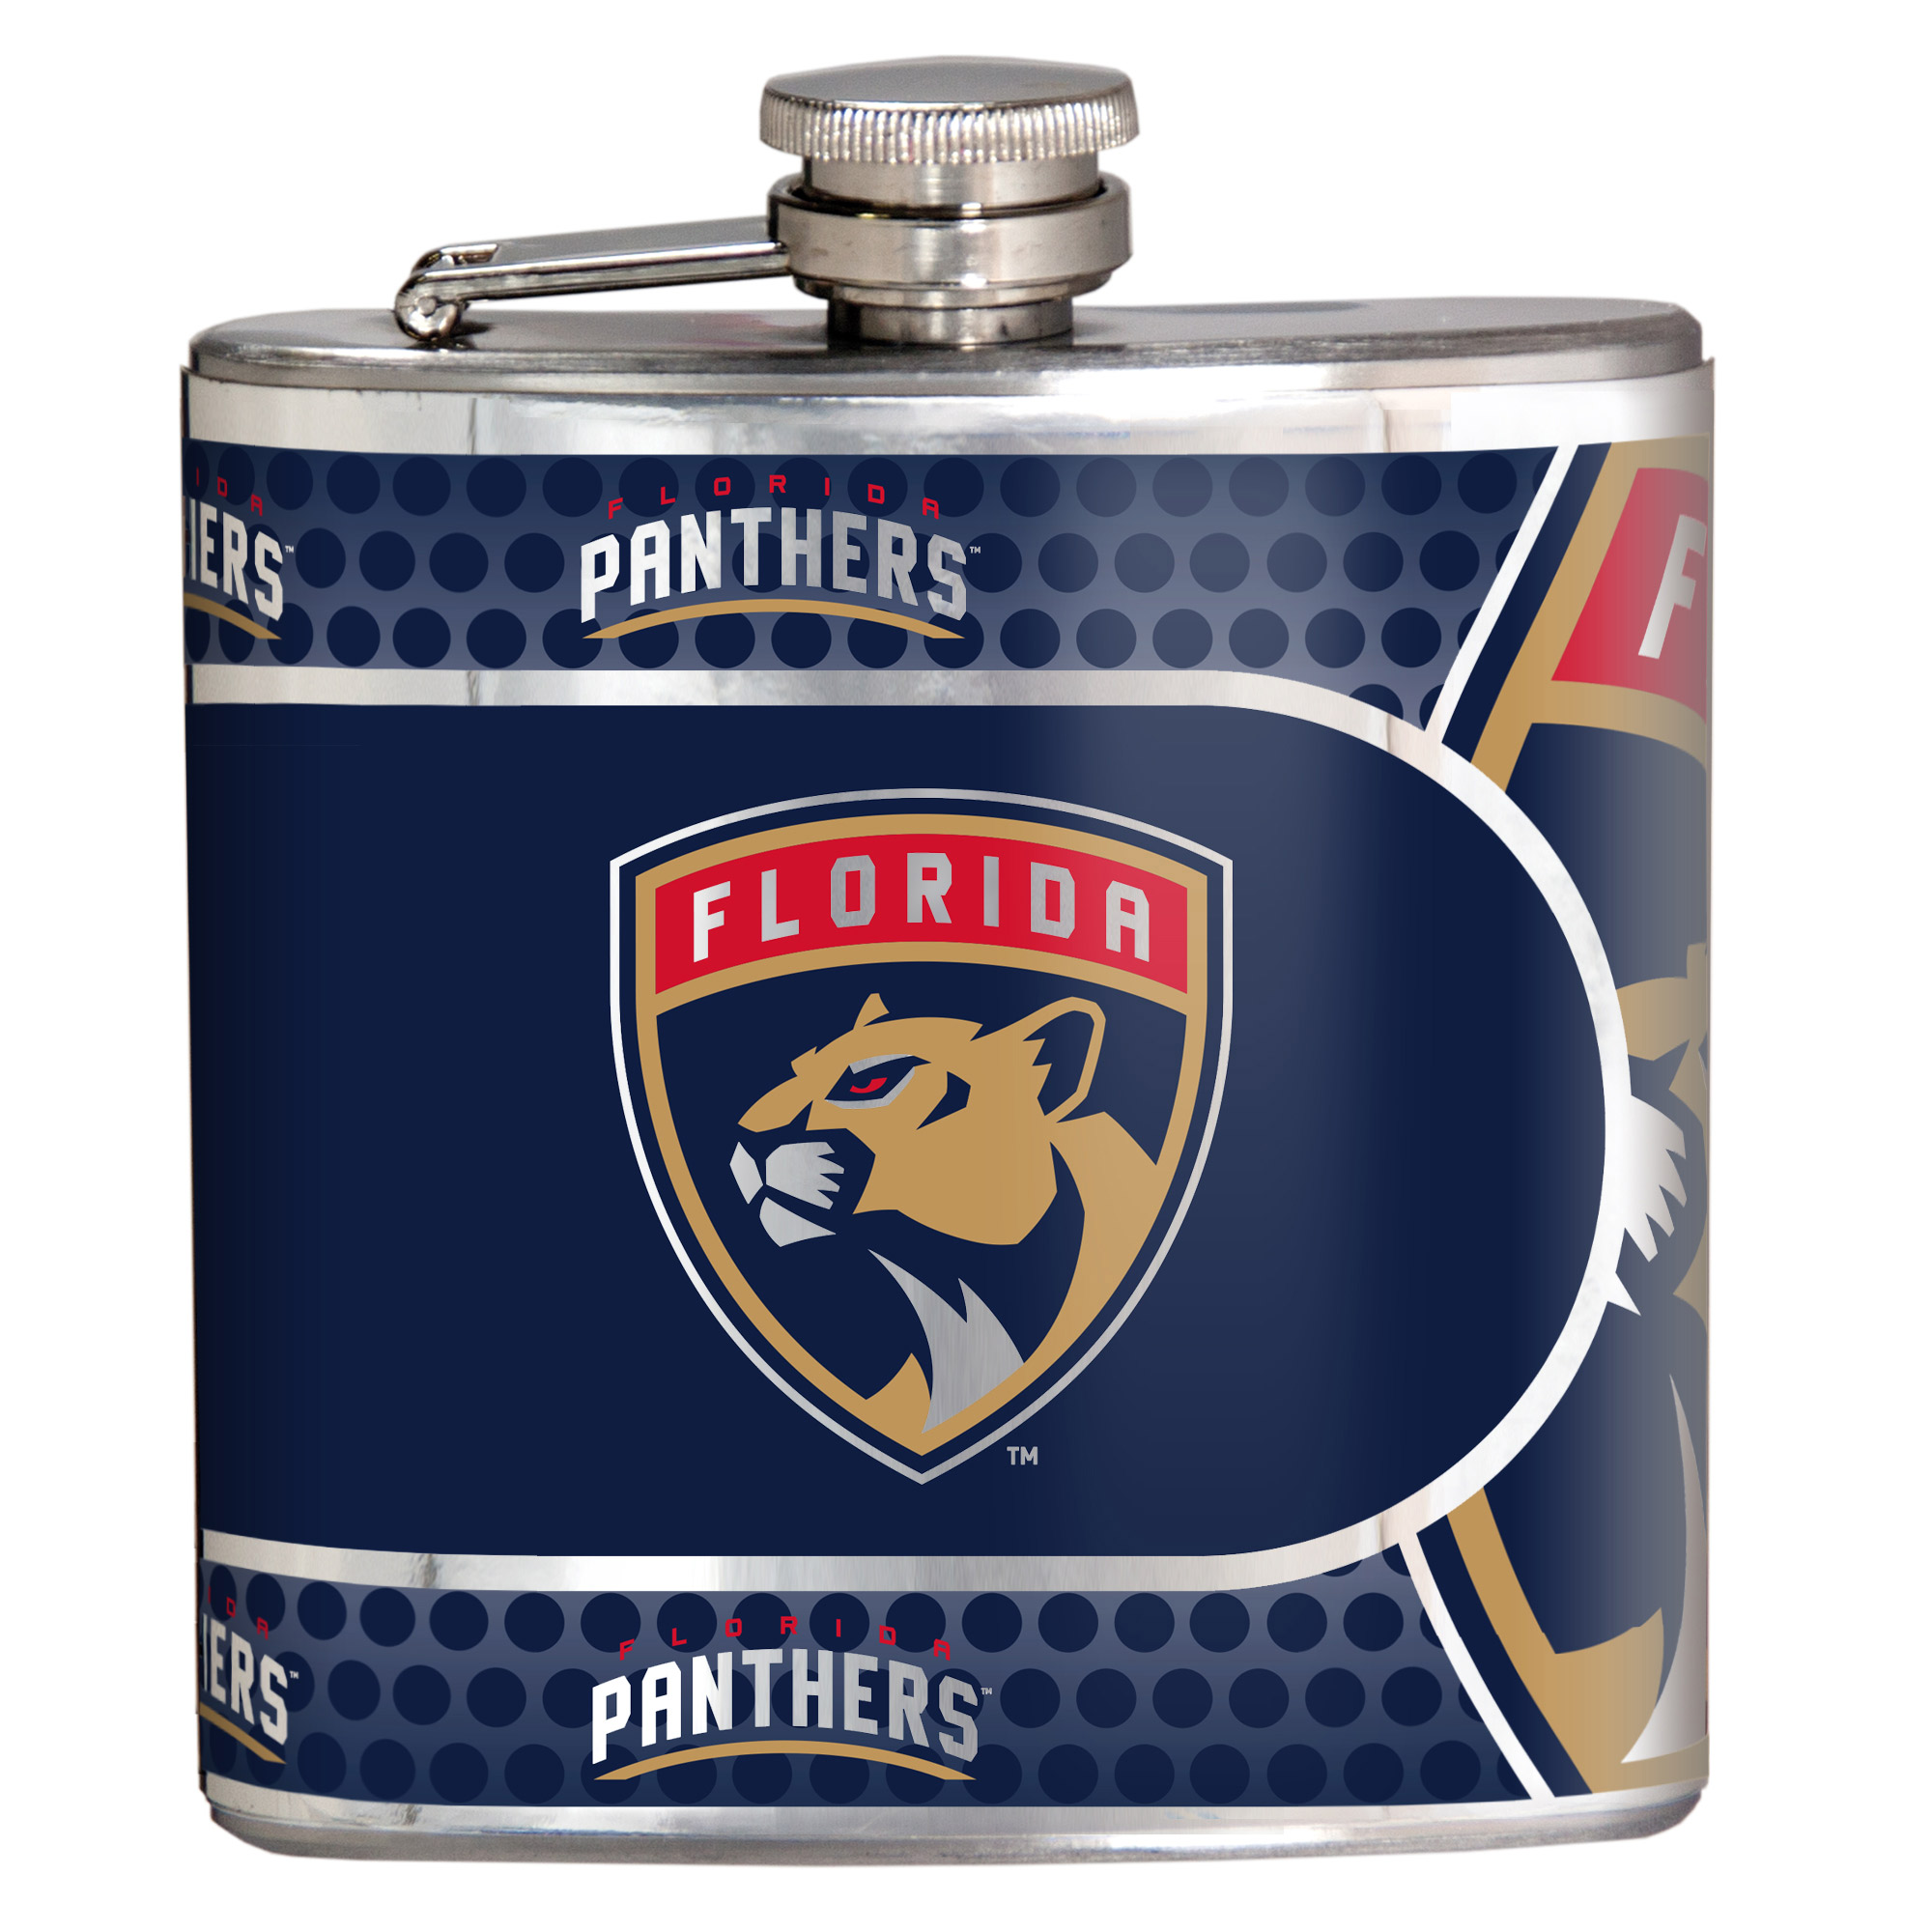 Florida Panthers 6oz. Stainless Steel Hip Flask - Silver - No Size